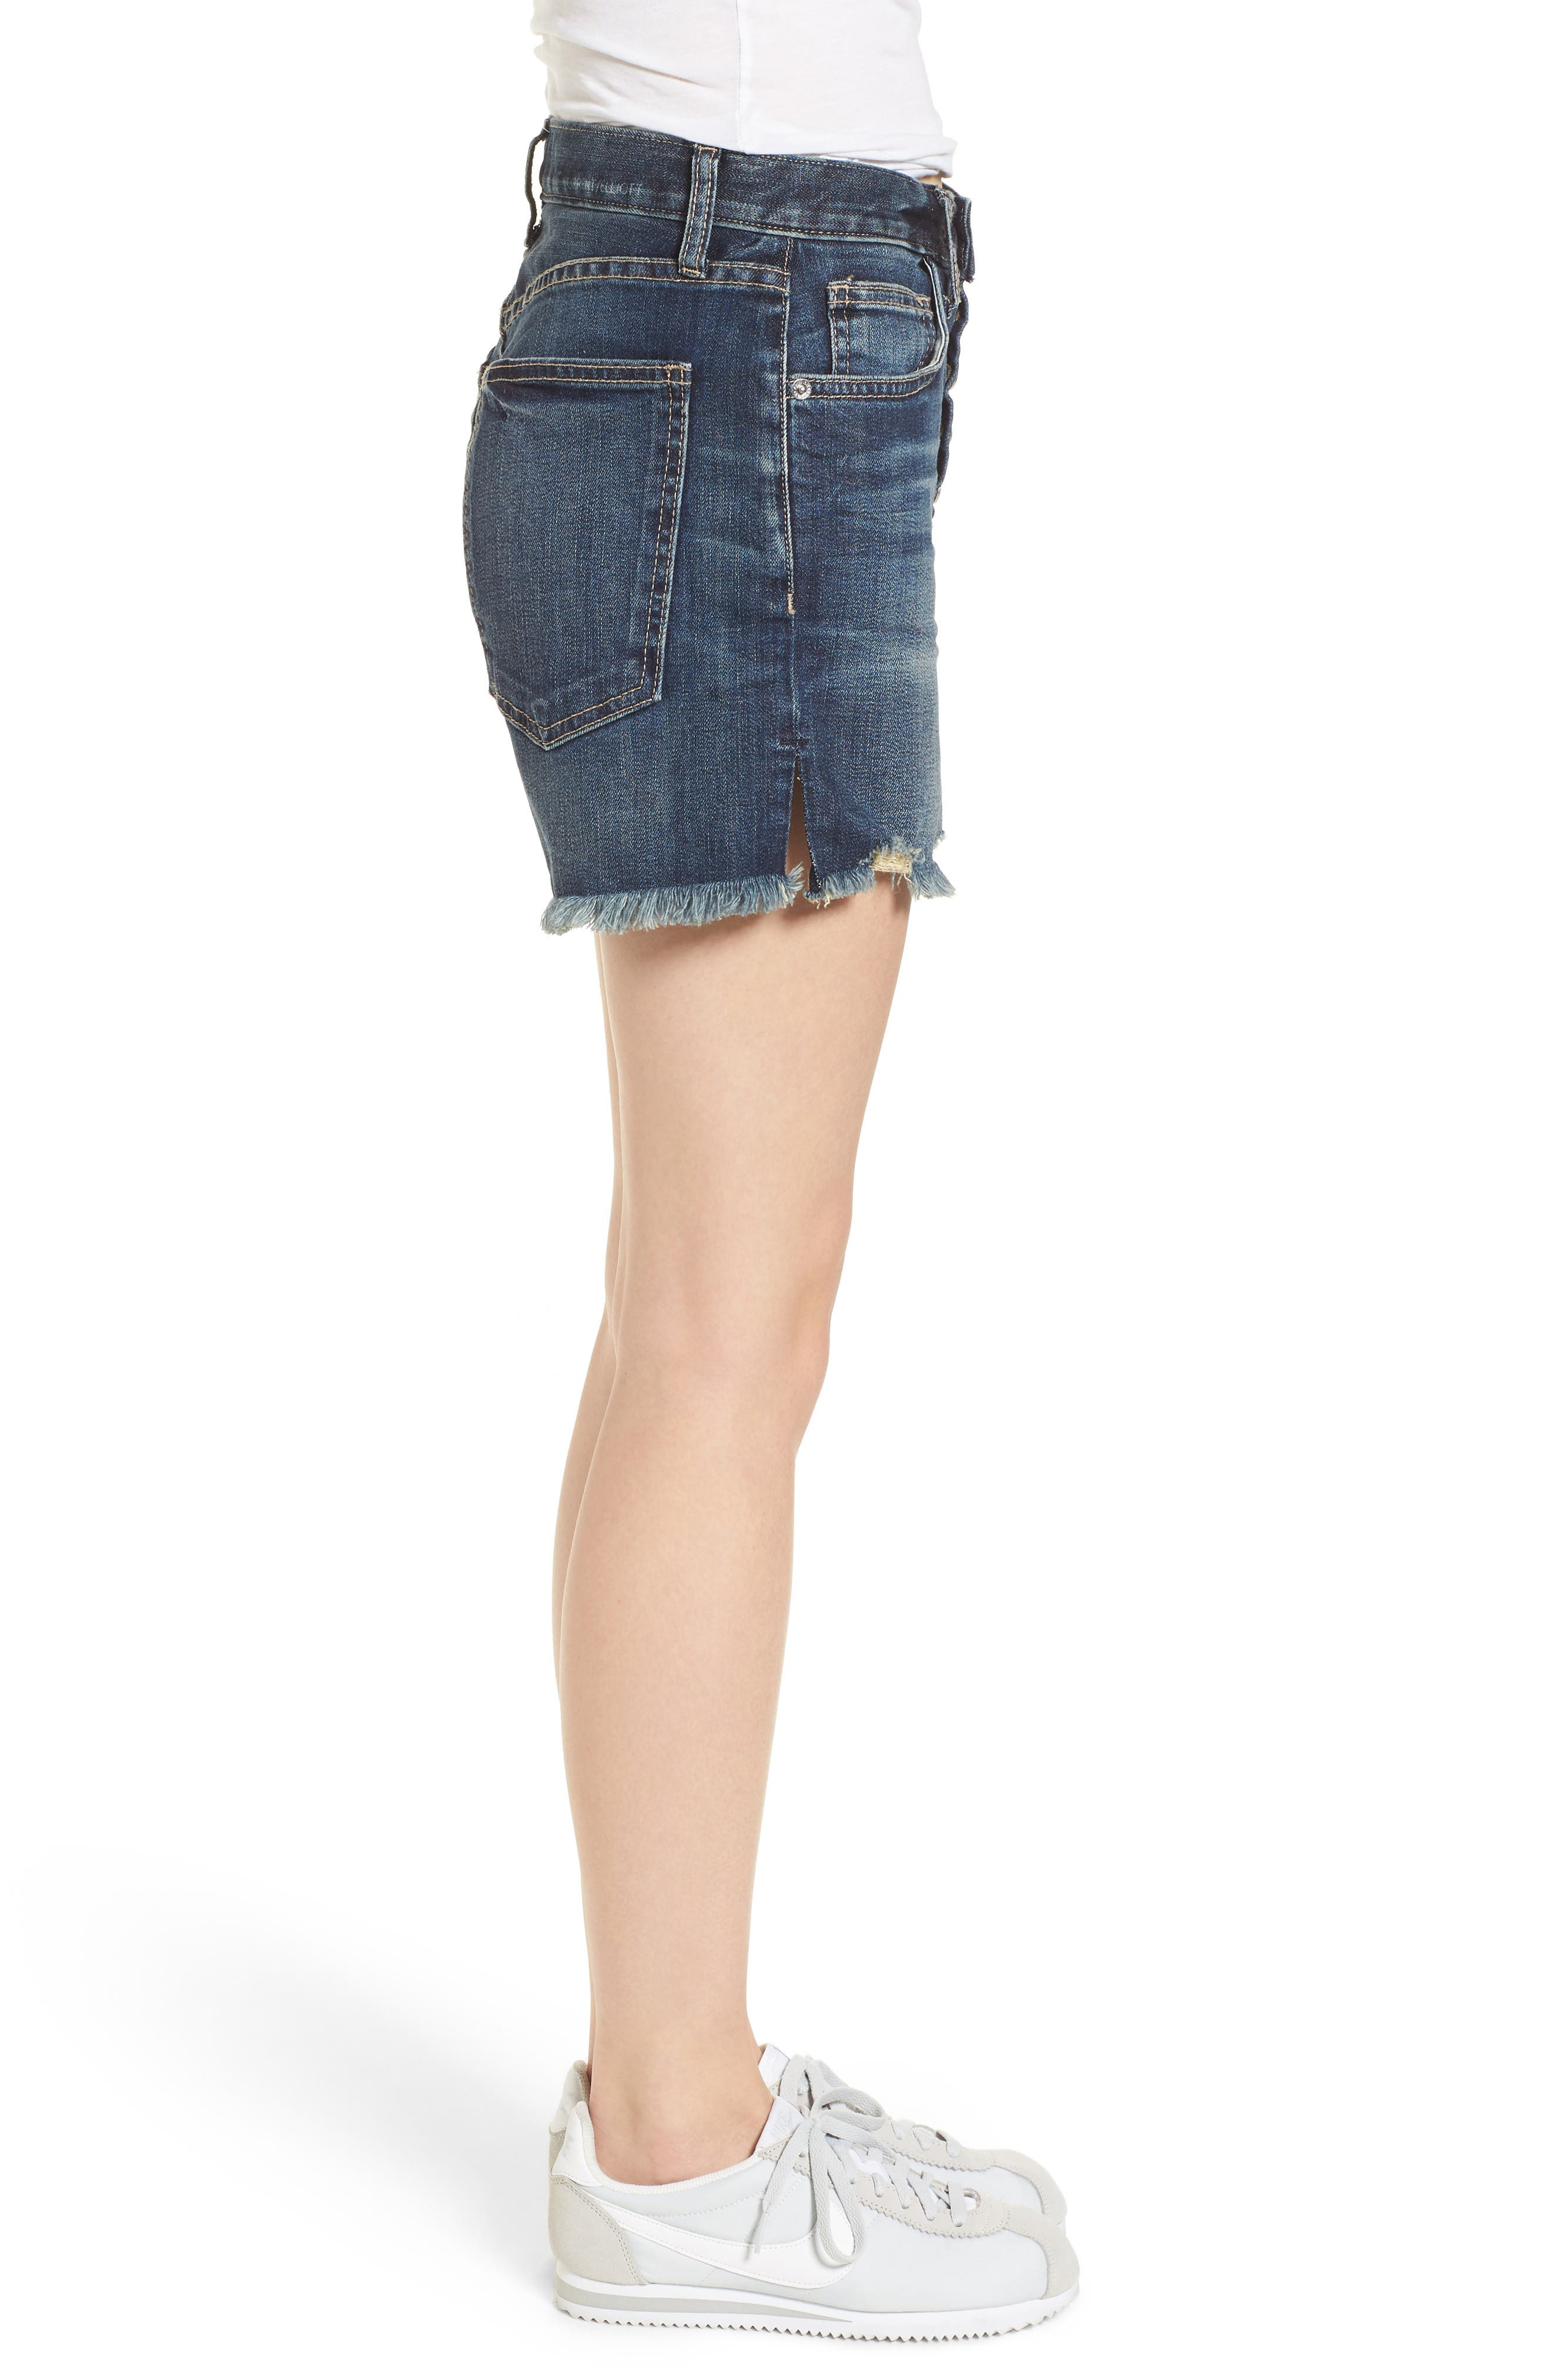 The Ultra High Waist Cutoff Denim Shorts,                             Alternate thumbnail 3, color,                             490